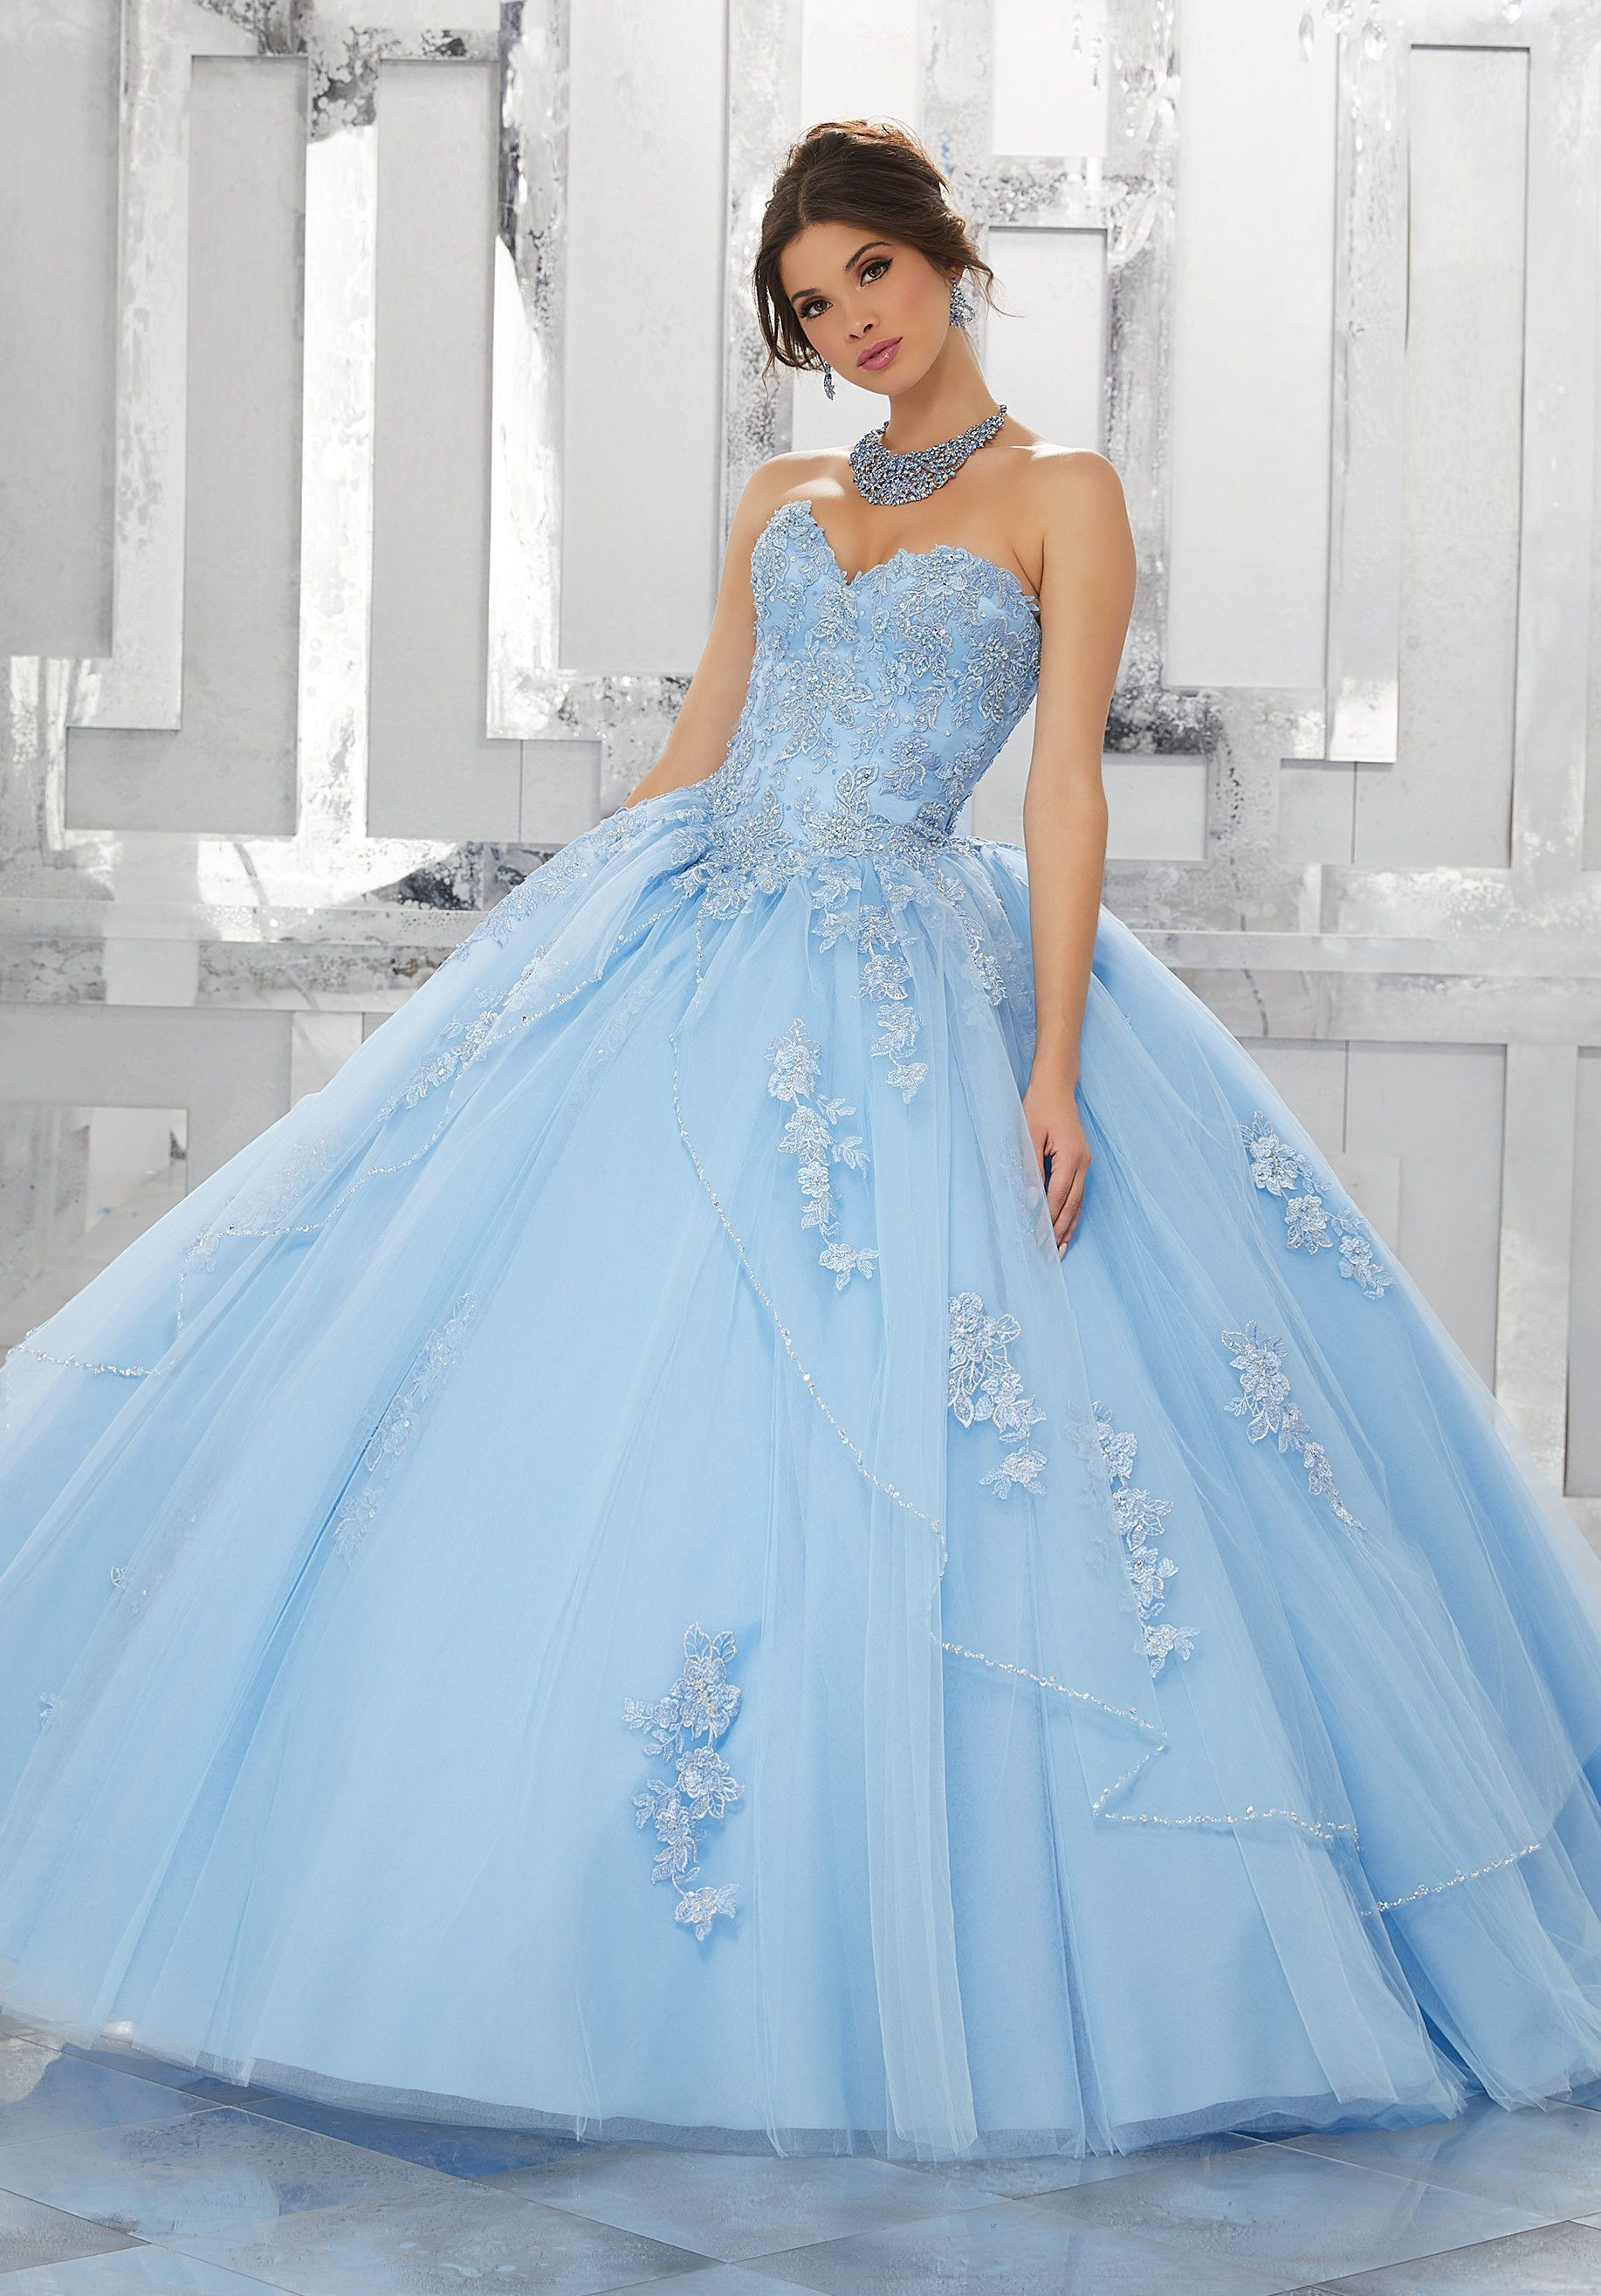 06f73bae09 A-line Strapless Quinceanera Dress by Mori Lee Valencia Style 60024